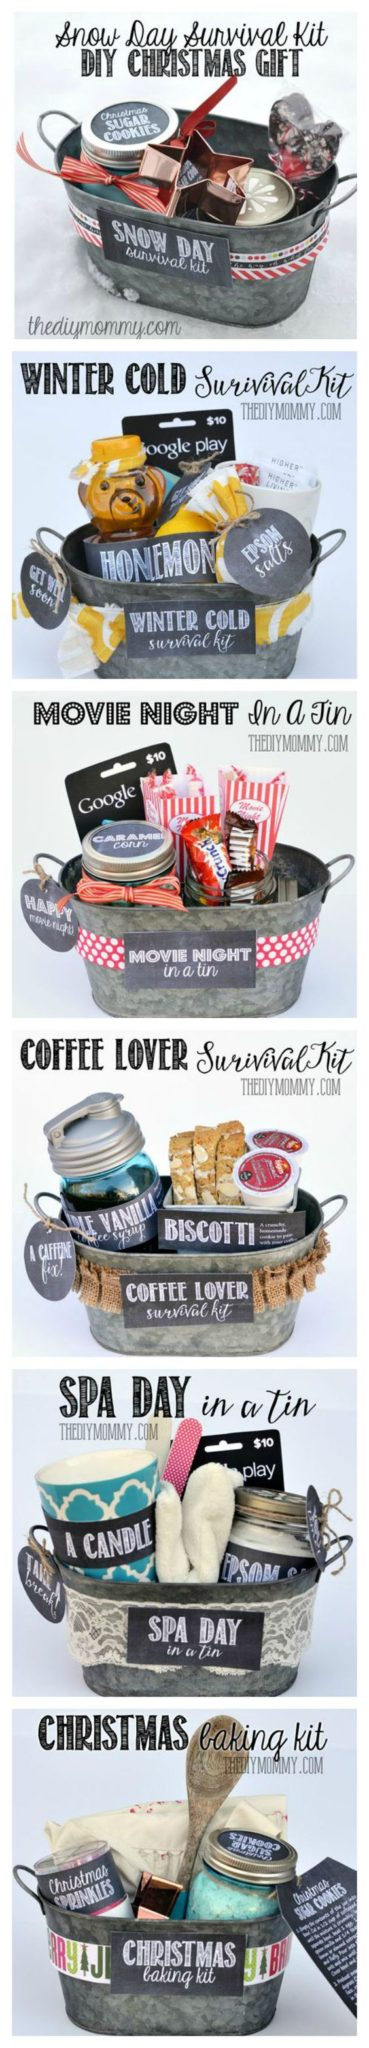 6 DIY Gifts in a Tin Ideas via The DIY Mommy - Do it Yourself Gift Baskets Ideas for All Occasions - Perfect for Christmas - Birthdays or anytime! #giftbaskets #giftbasketideas #diygiftbaskets #gifthampers #easygifts #giftideas #birthdaygifts #diybirthdaygifts #birthdaygiftideas